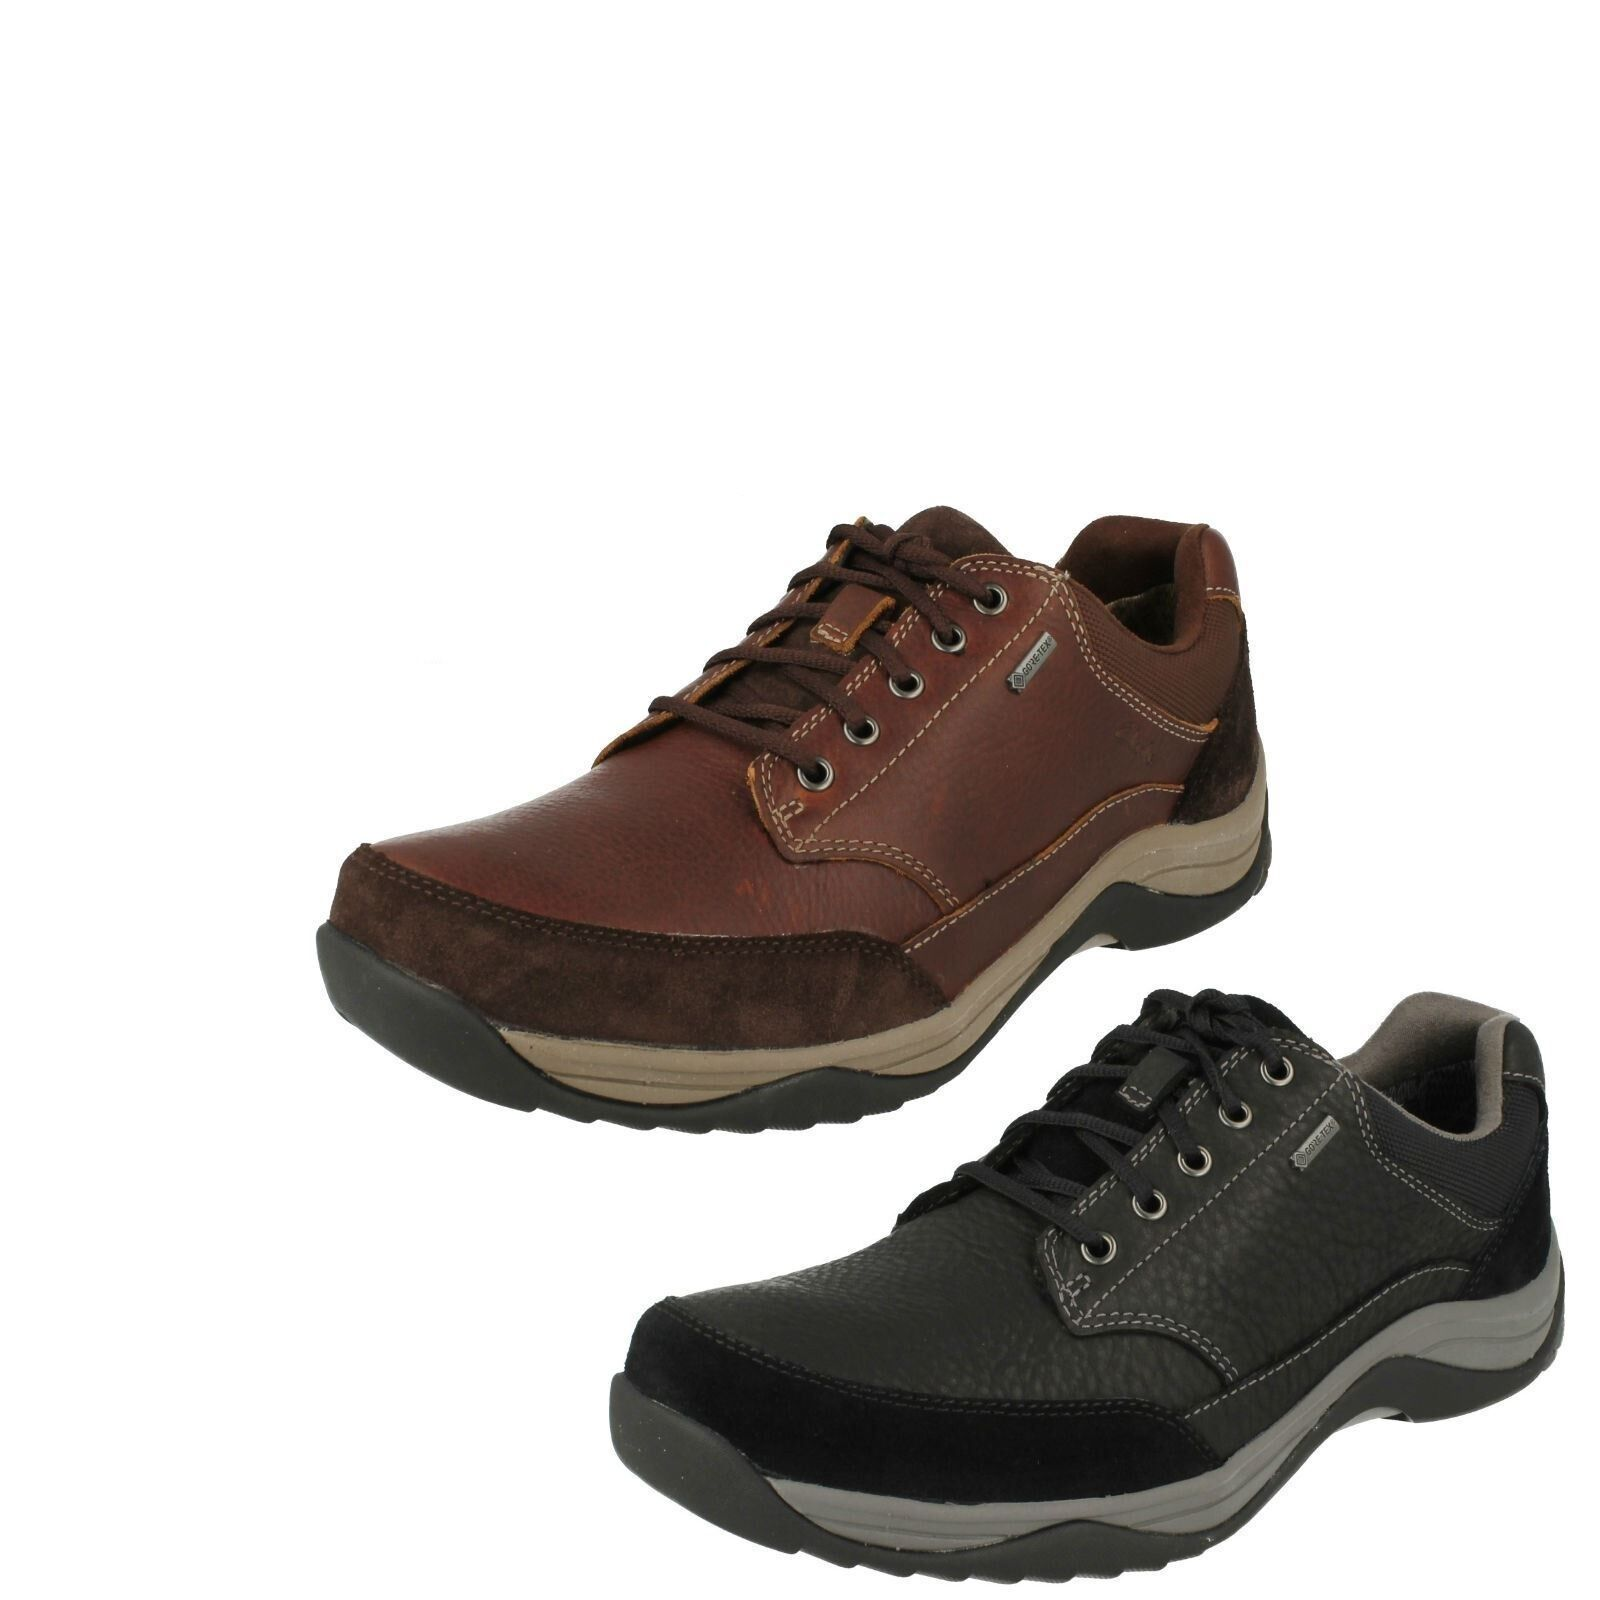 Clarks Mens Gore-Tex shoes 'Baystone Go GTX'